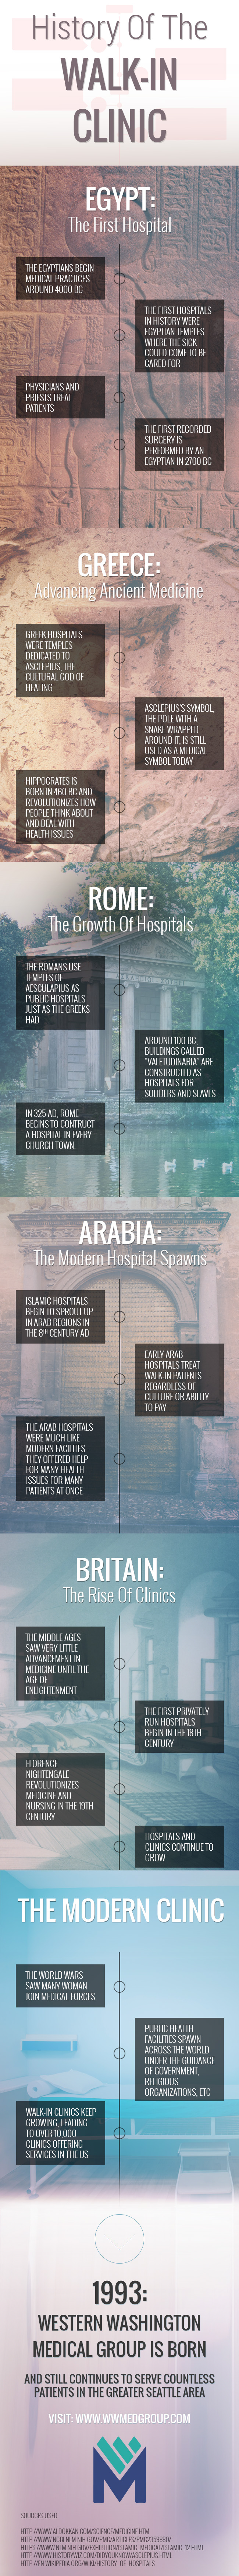 history-of-walk-in-clinic-infographic